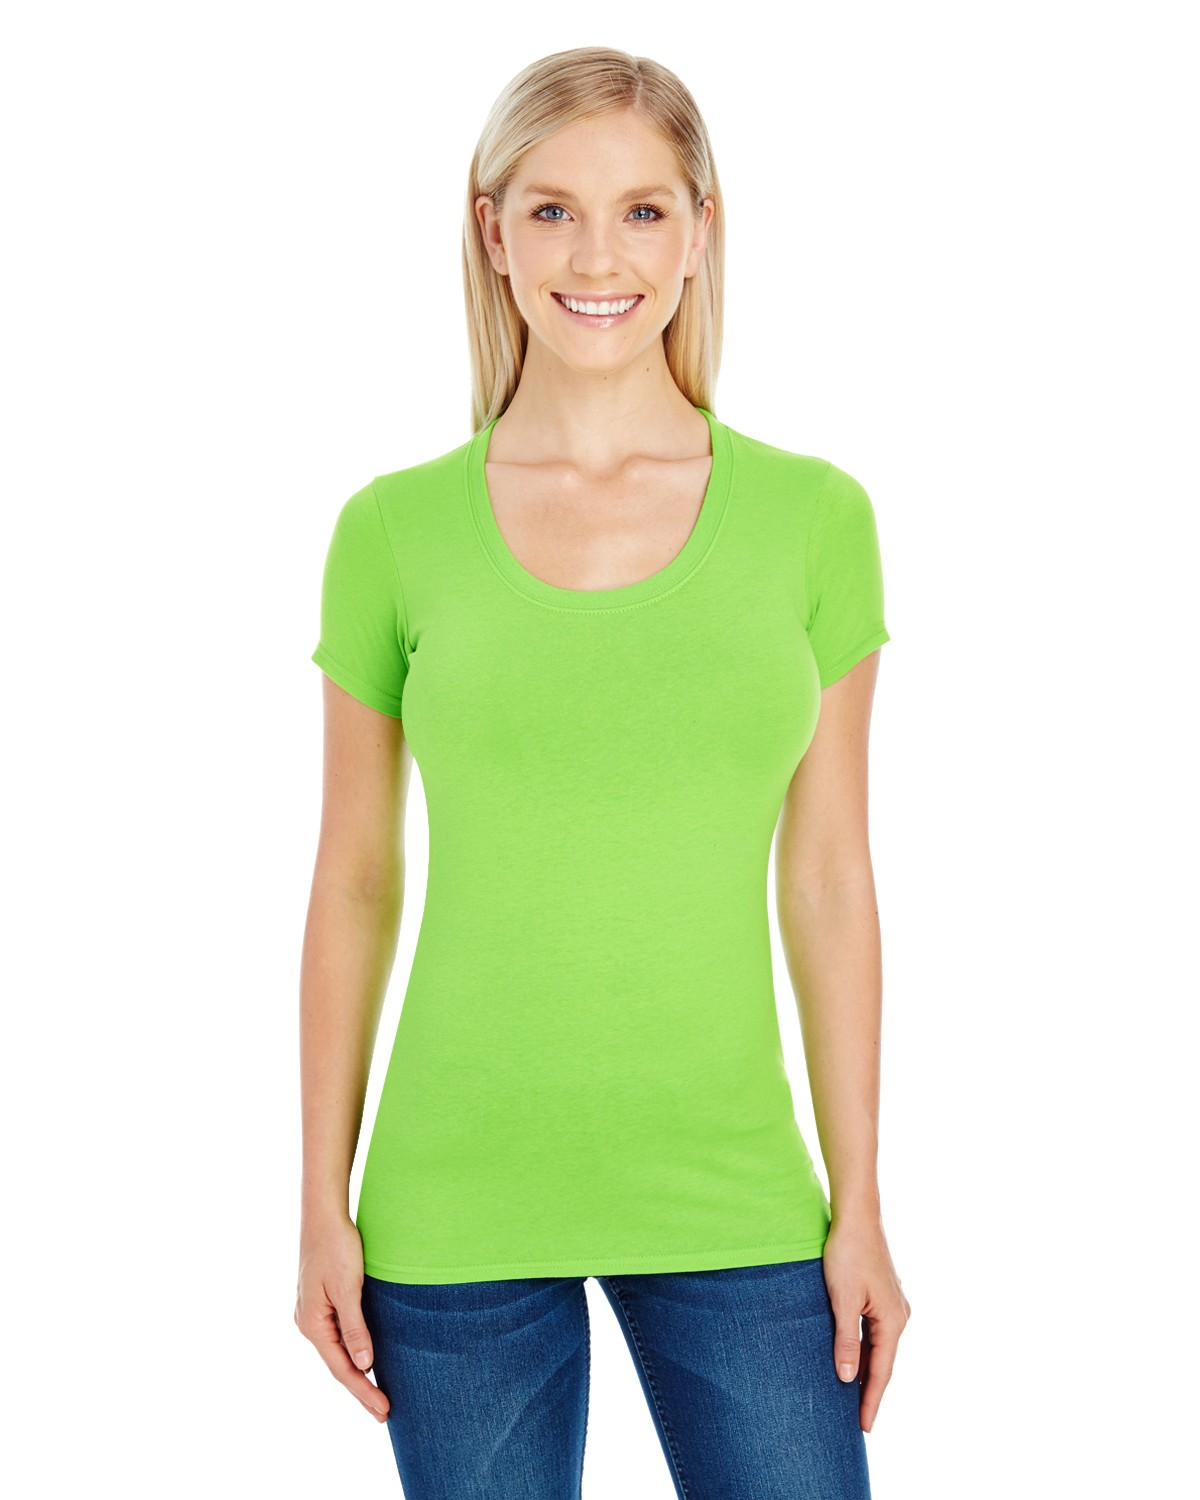 220S Threadfast Apparel ACTIVE GREEN